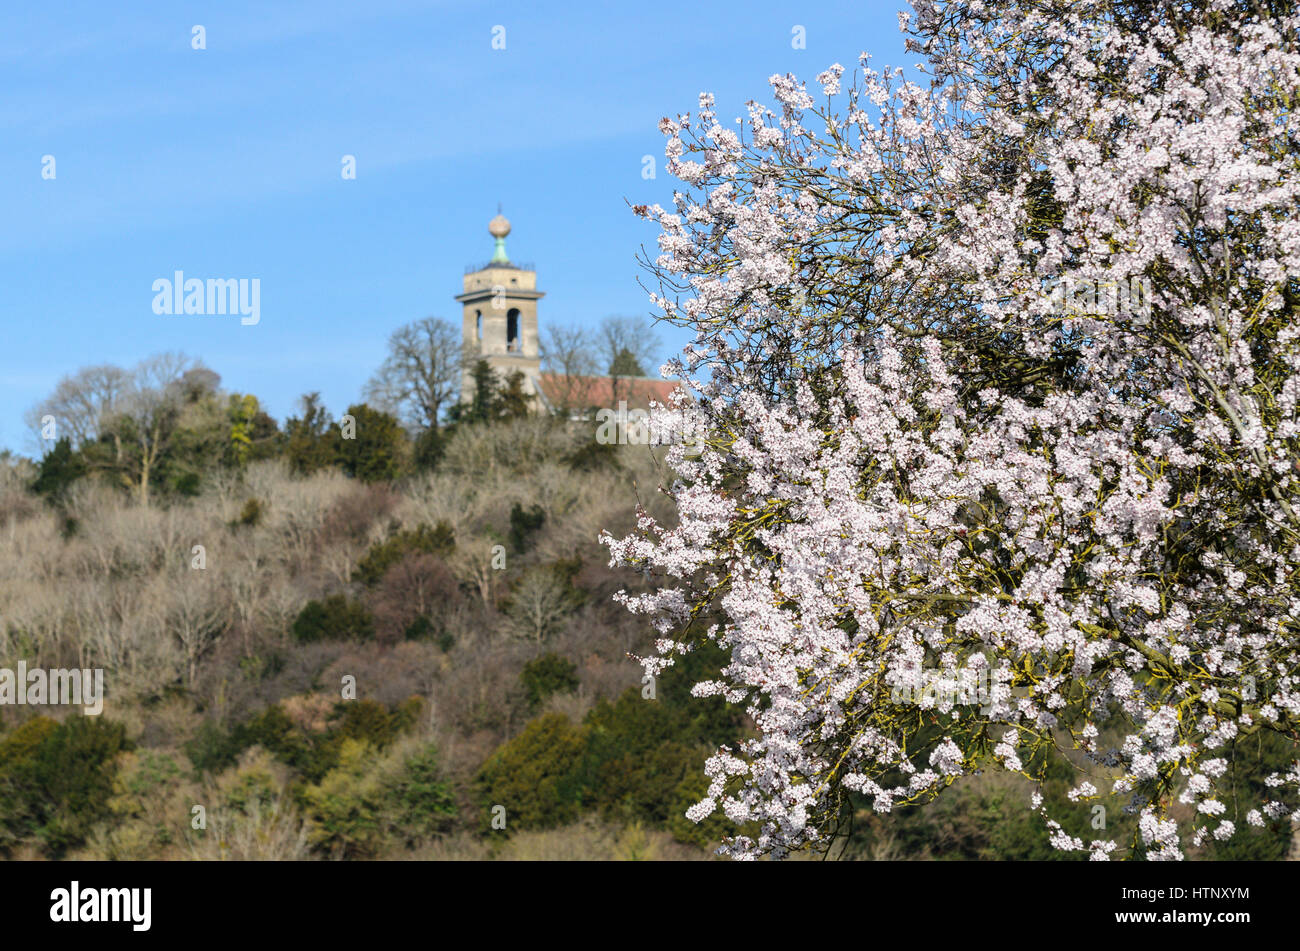 West Wycombe, UK. 13th March 2017. UK Weather. A warmer than average temperature was enjoyed in the Chiltern Hills - Stock Image